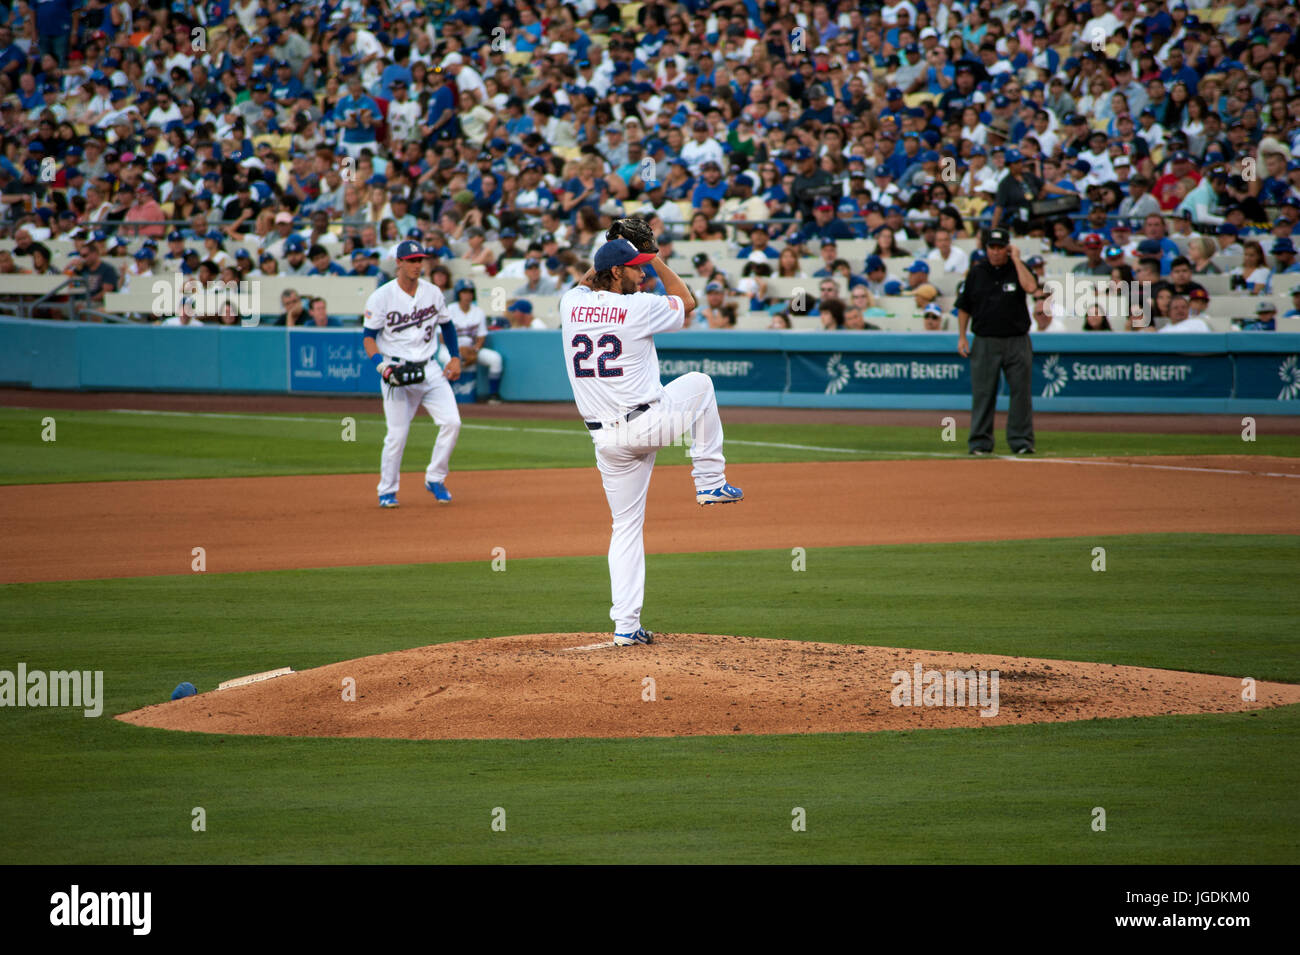 Dodger ace pitcher Clayton Kershaw pithcing at Dodger Stadium in Los Angeles, CA - Stock Image